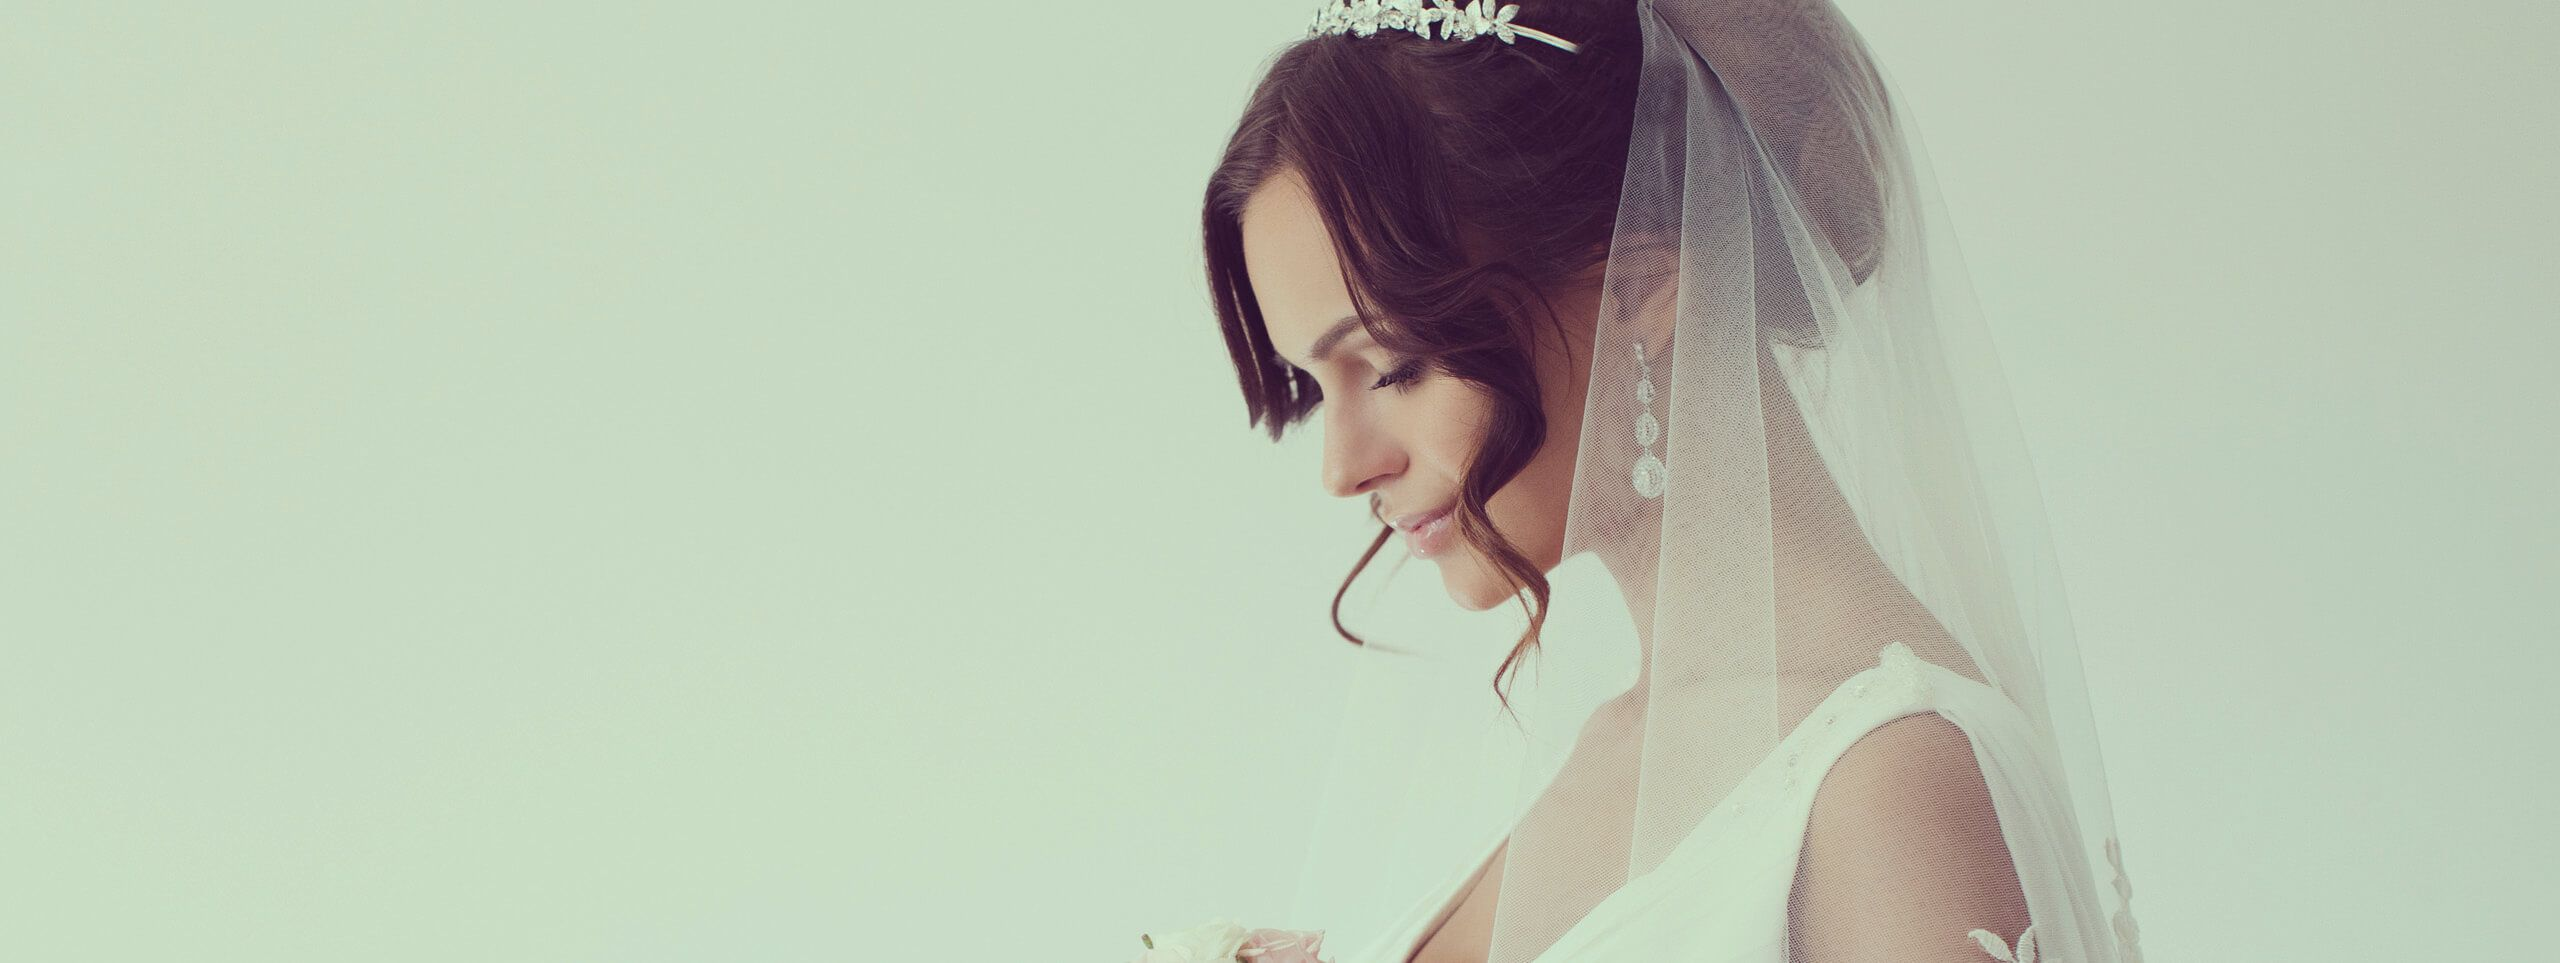 Model wears pretty updo hairstyle for wedding